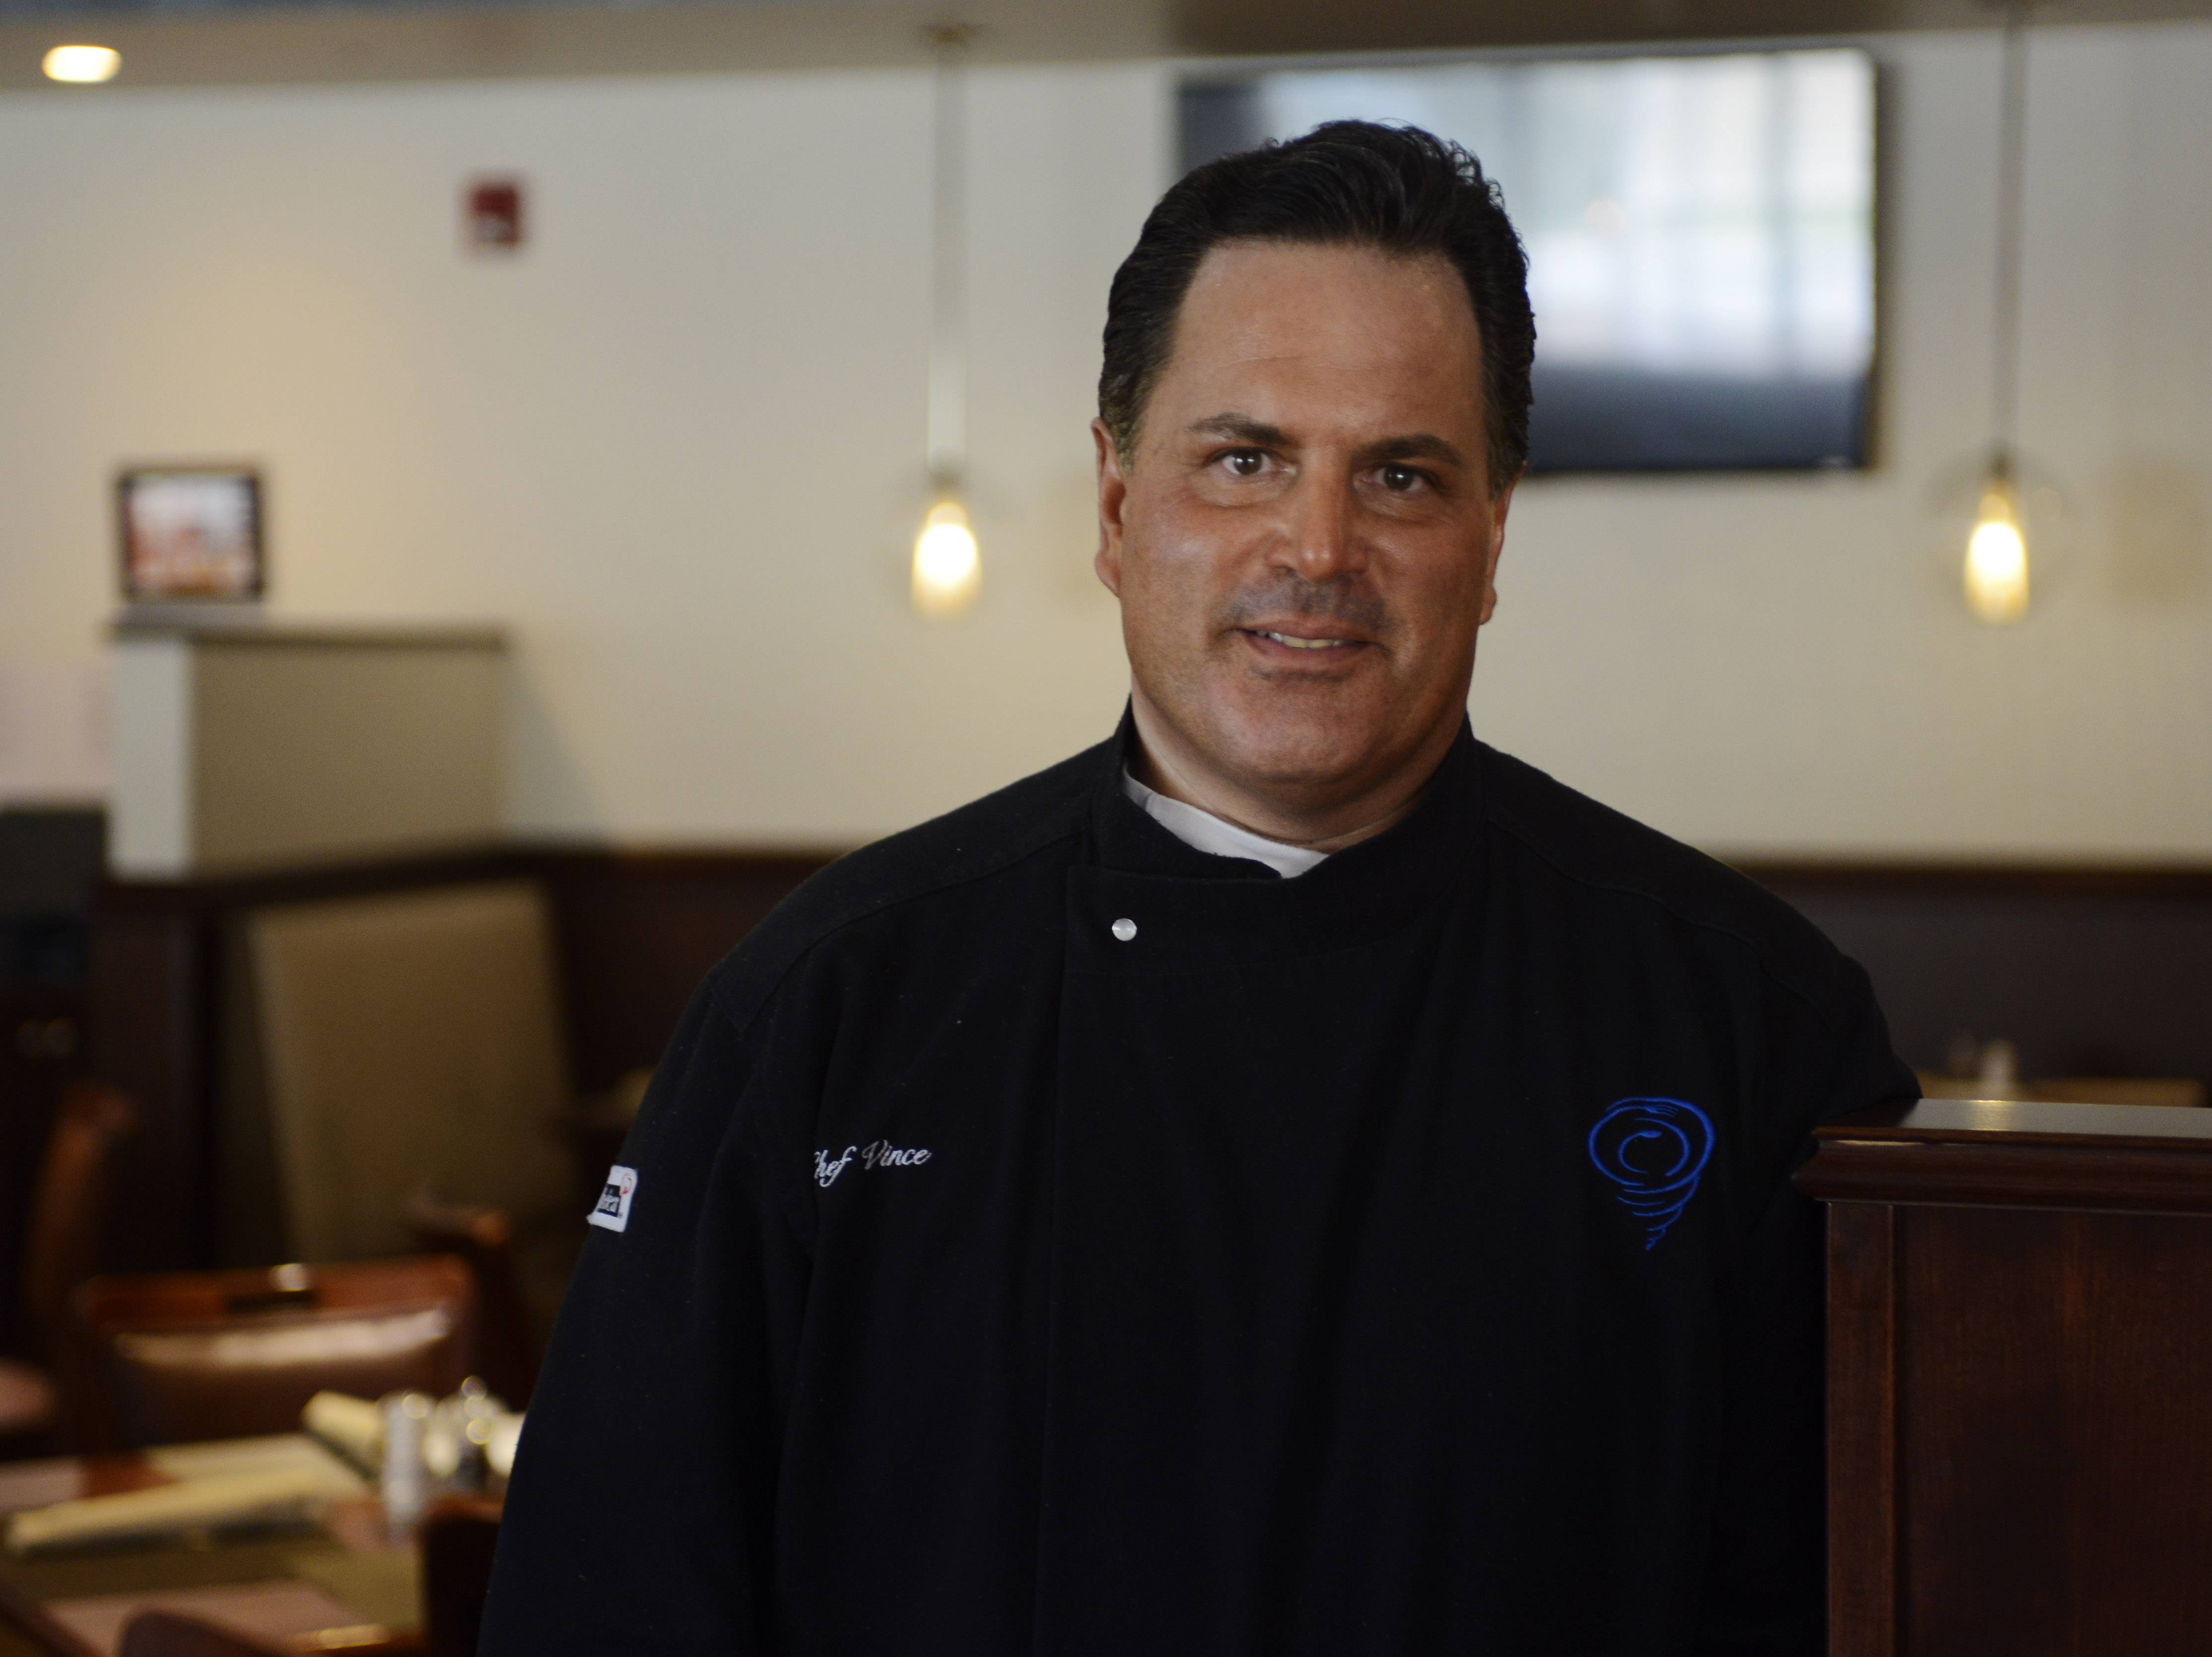 Chef Vince Pecora opened Zeal in Schaumburg in late 2013.